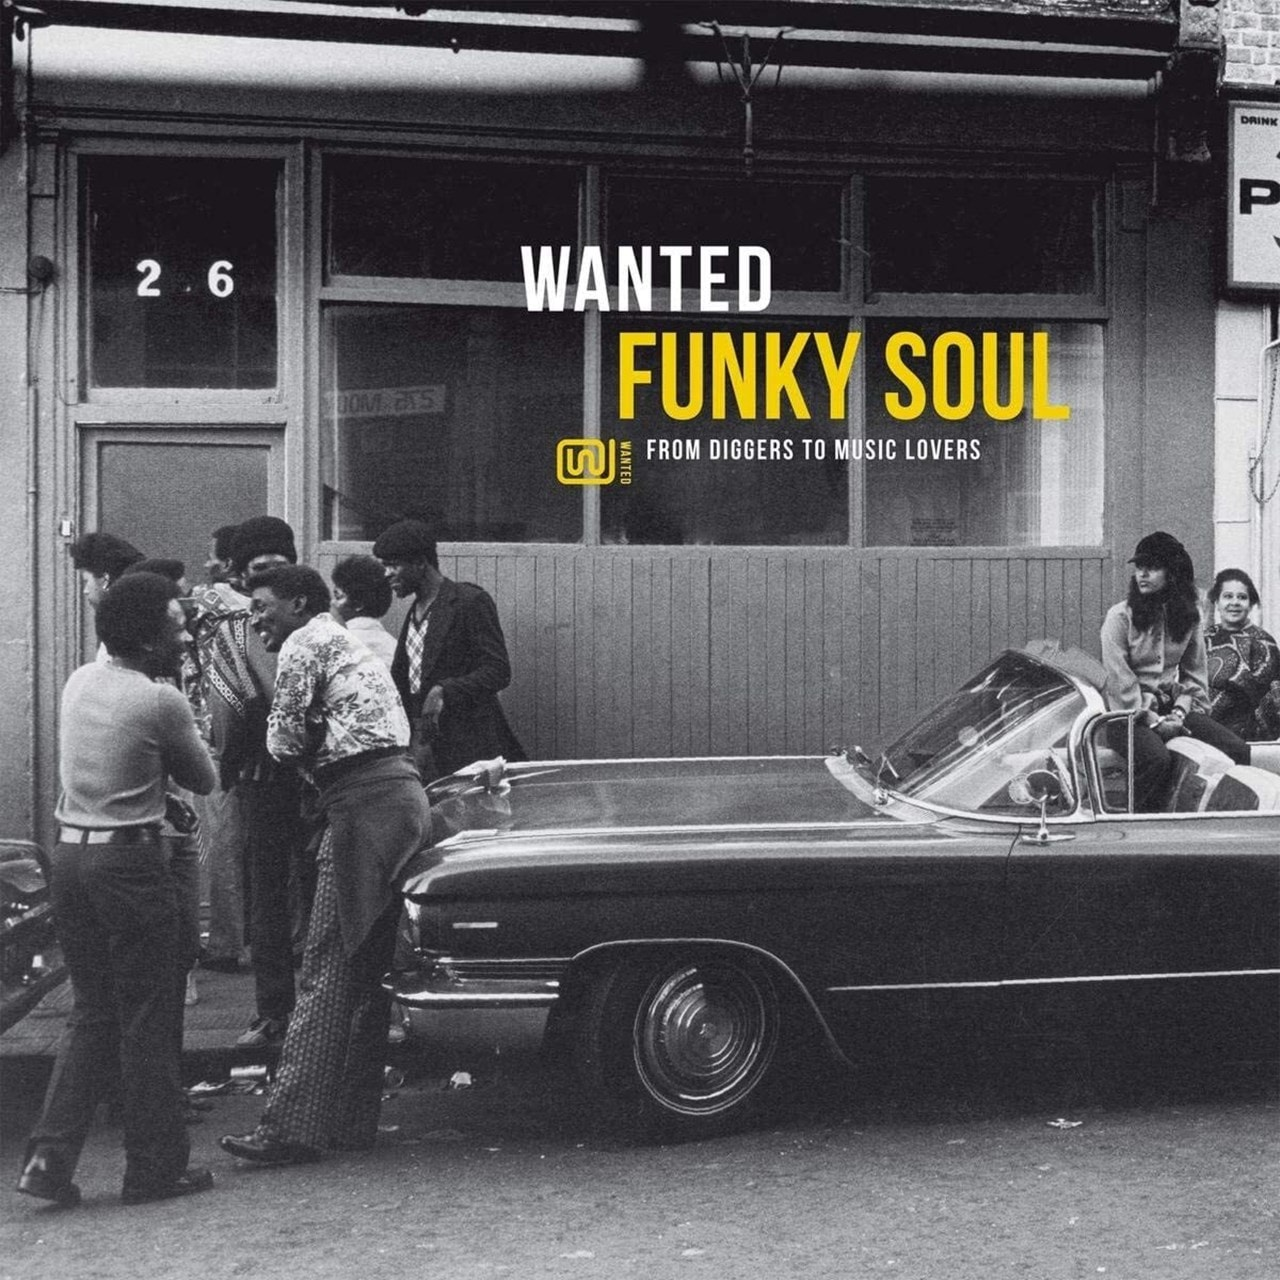 Wanted Funky Soul: From Diggers to Music Lovers - 1